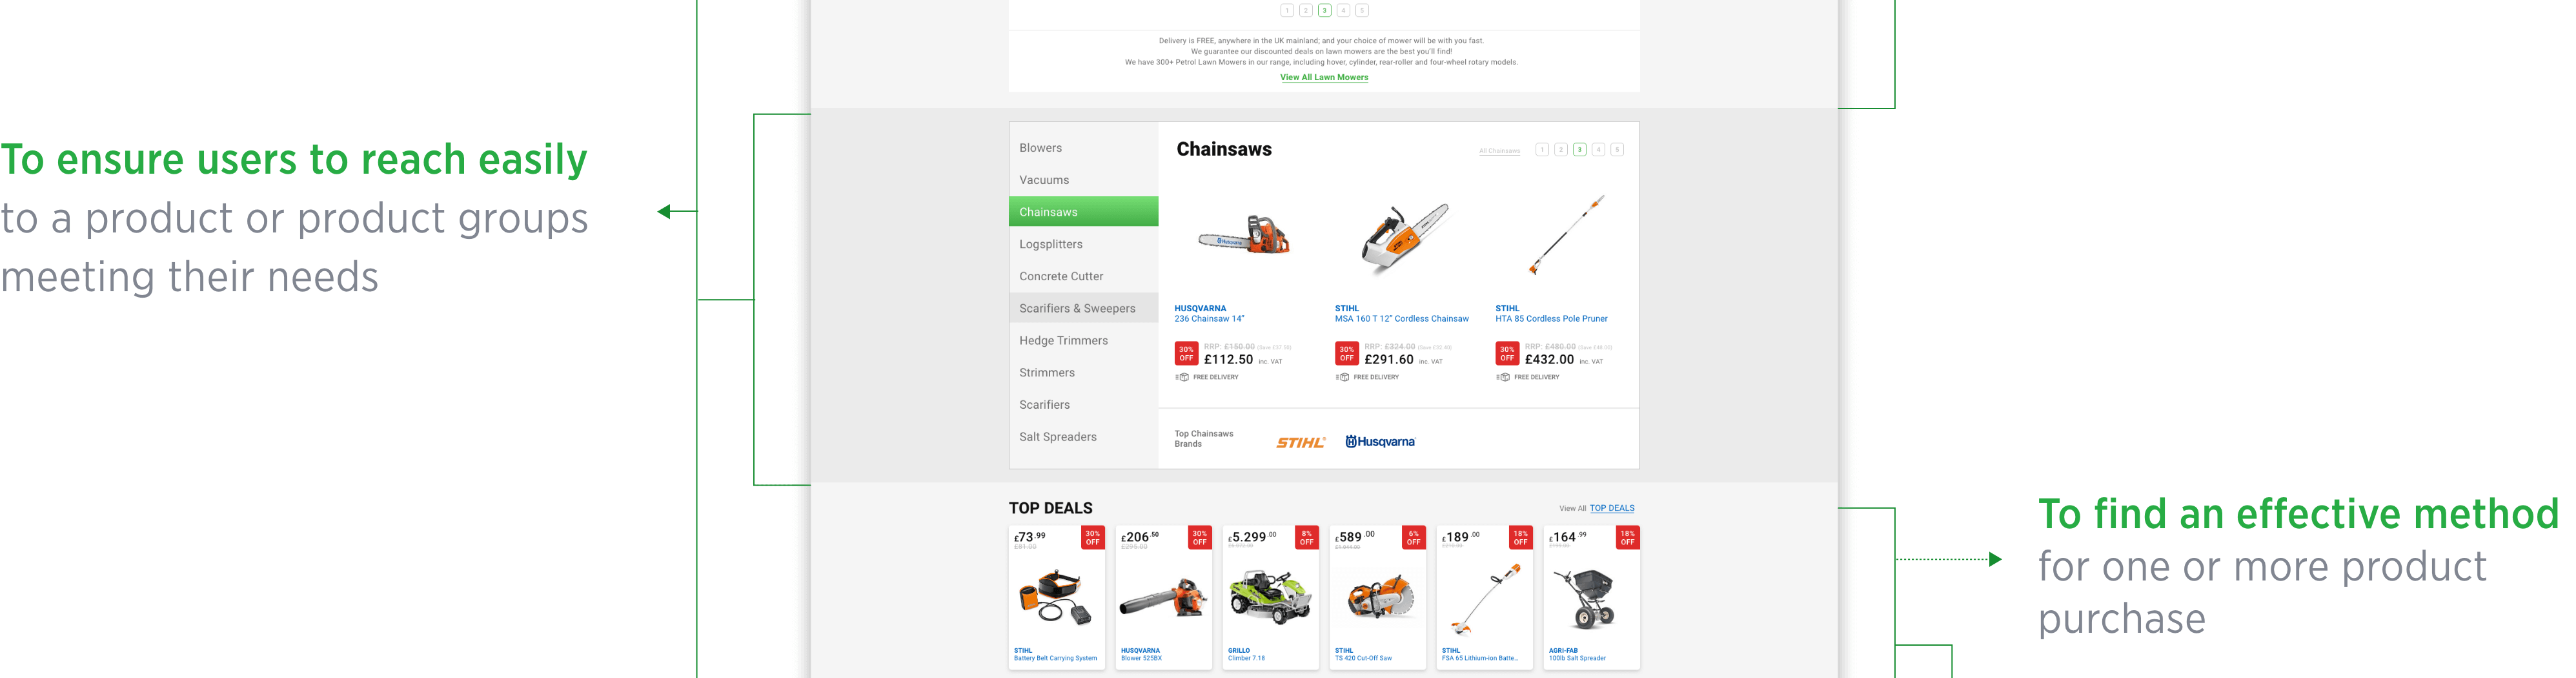 All Categories and Top Deals Section of APS website